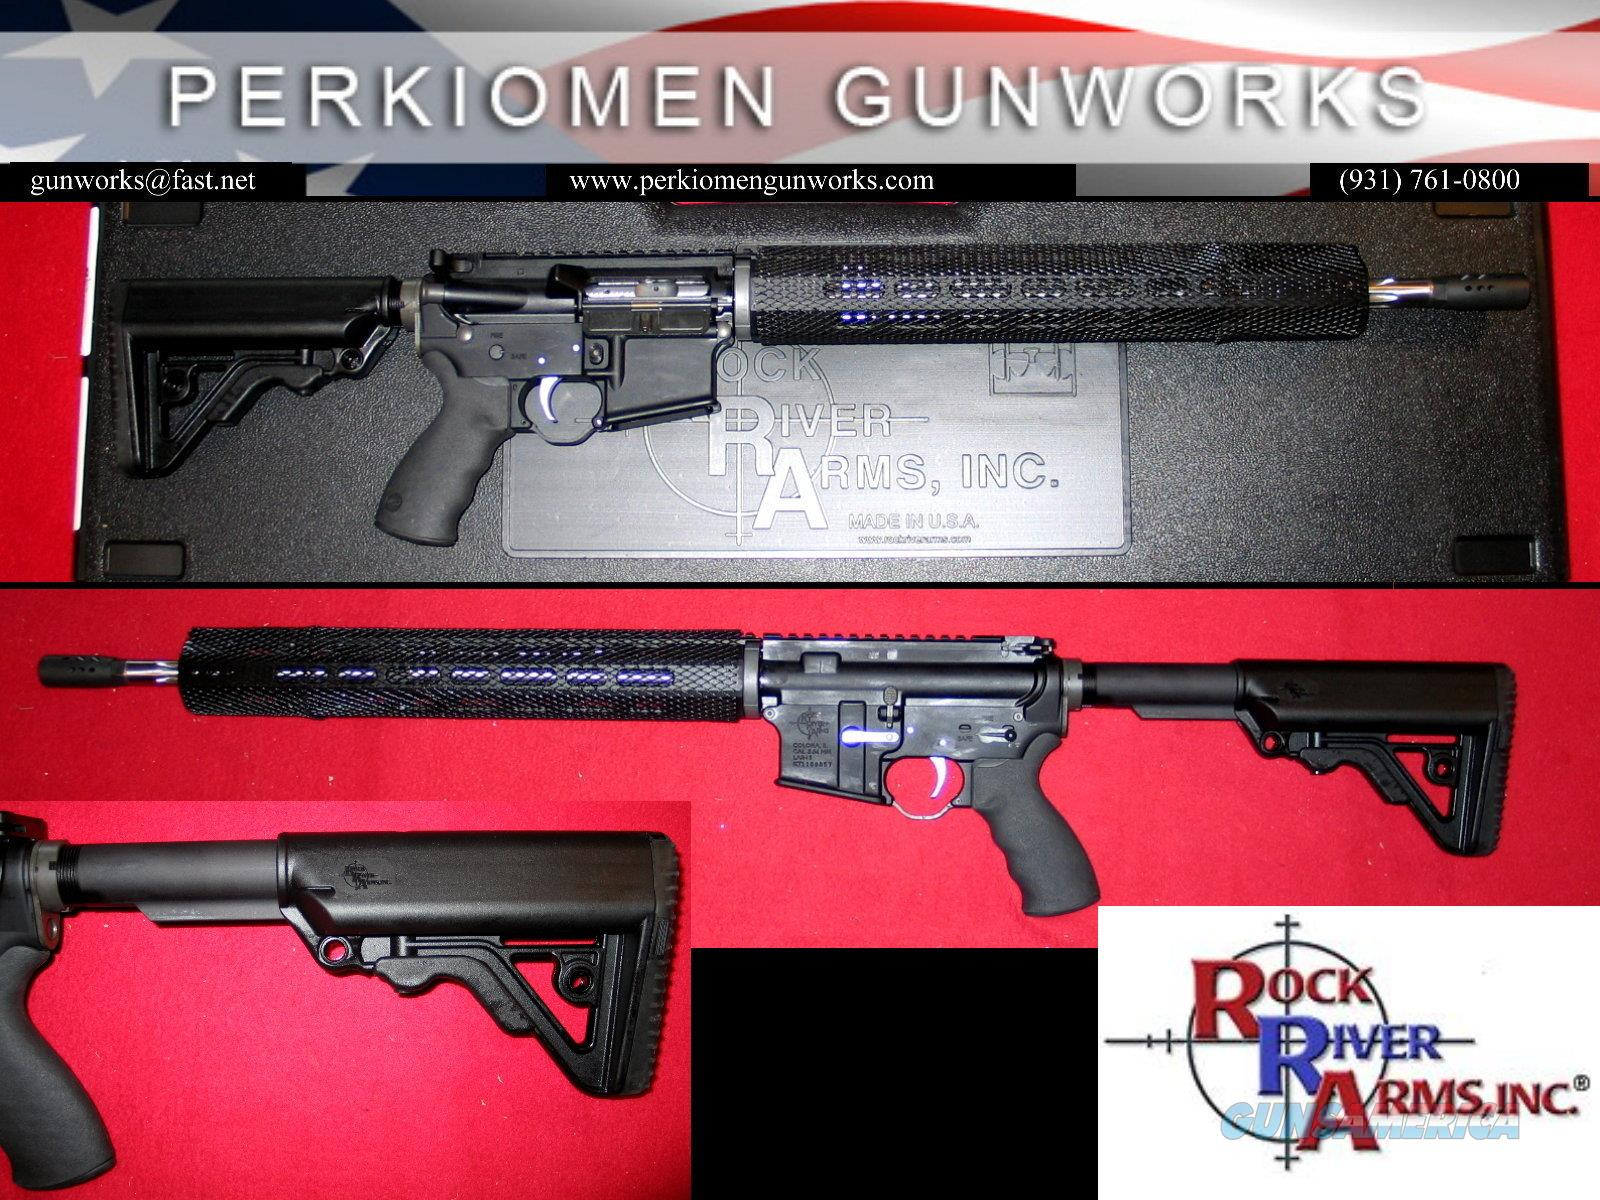 R3 Competition Rifle, 5.56/.223 with Chrome Bolt, Trigger & Ergo Options, NIB  Guns > Rifles > Rock River Arms Rifles